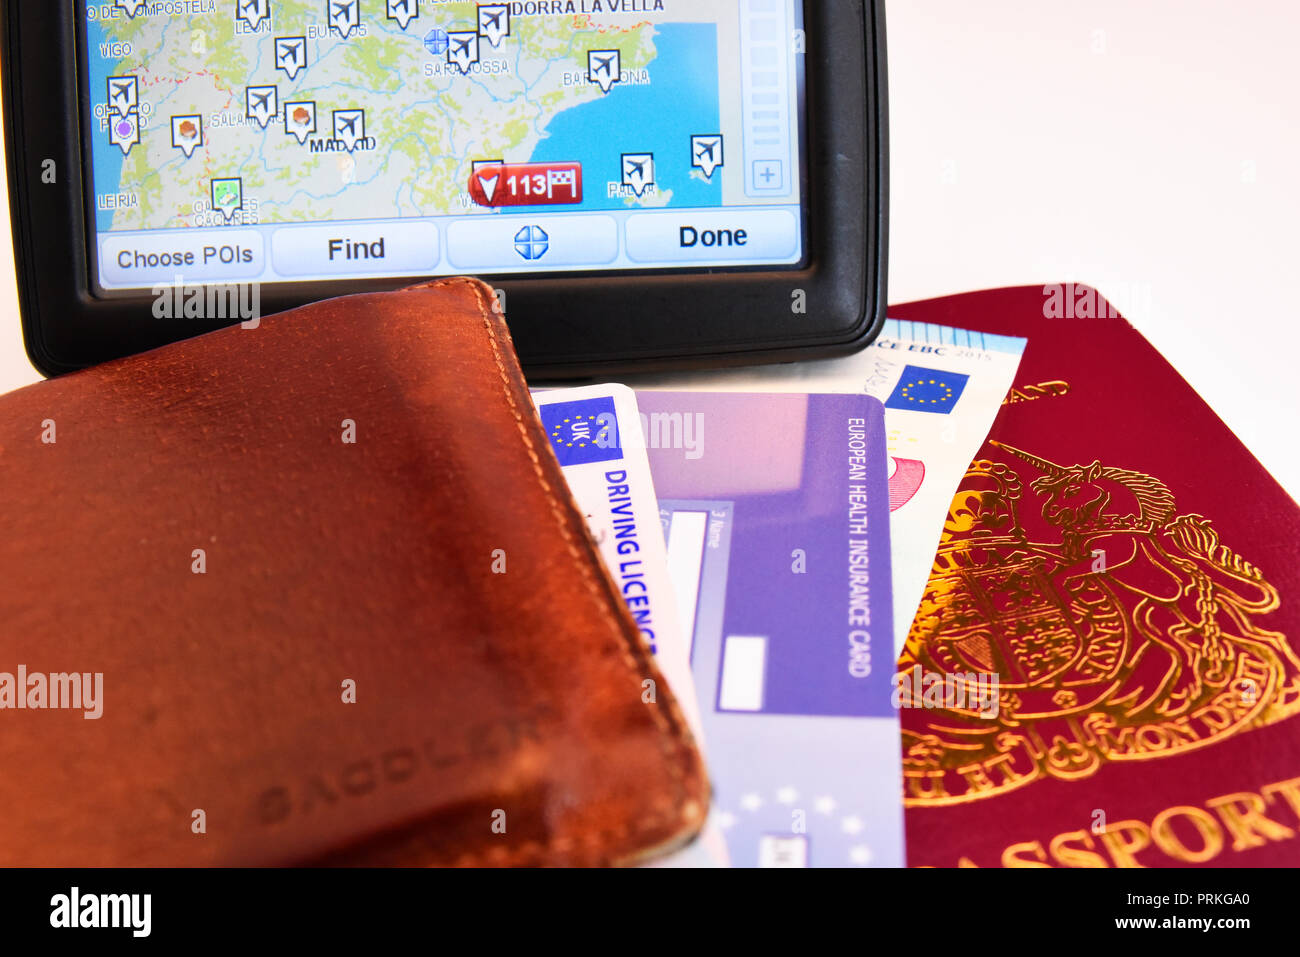 Satnav for Spain with EU United Kingdom of Great Britain and Northern Ireland biometric passport with Euro cash notes, EHIC card, driving licence Stock Photo